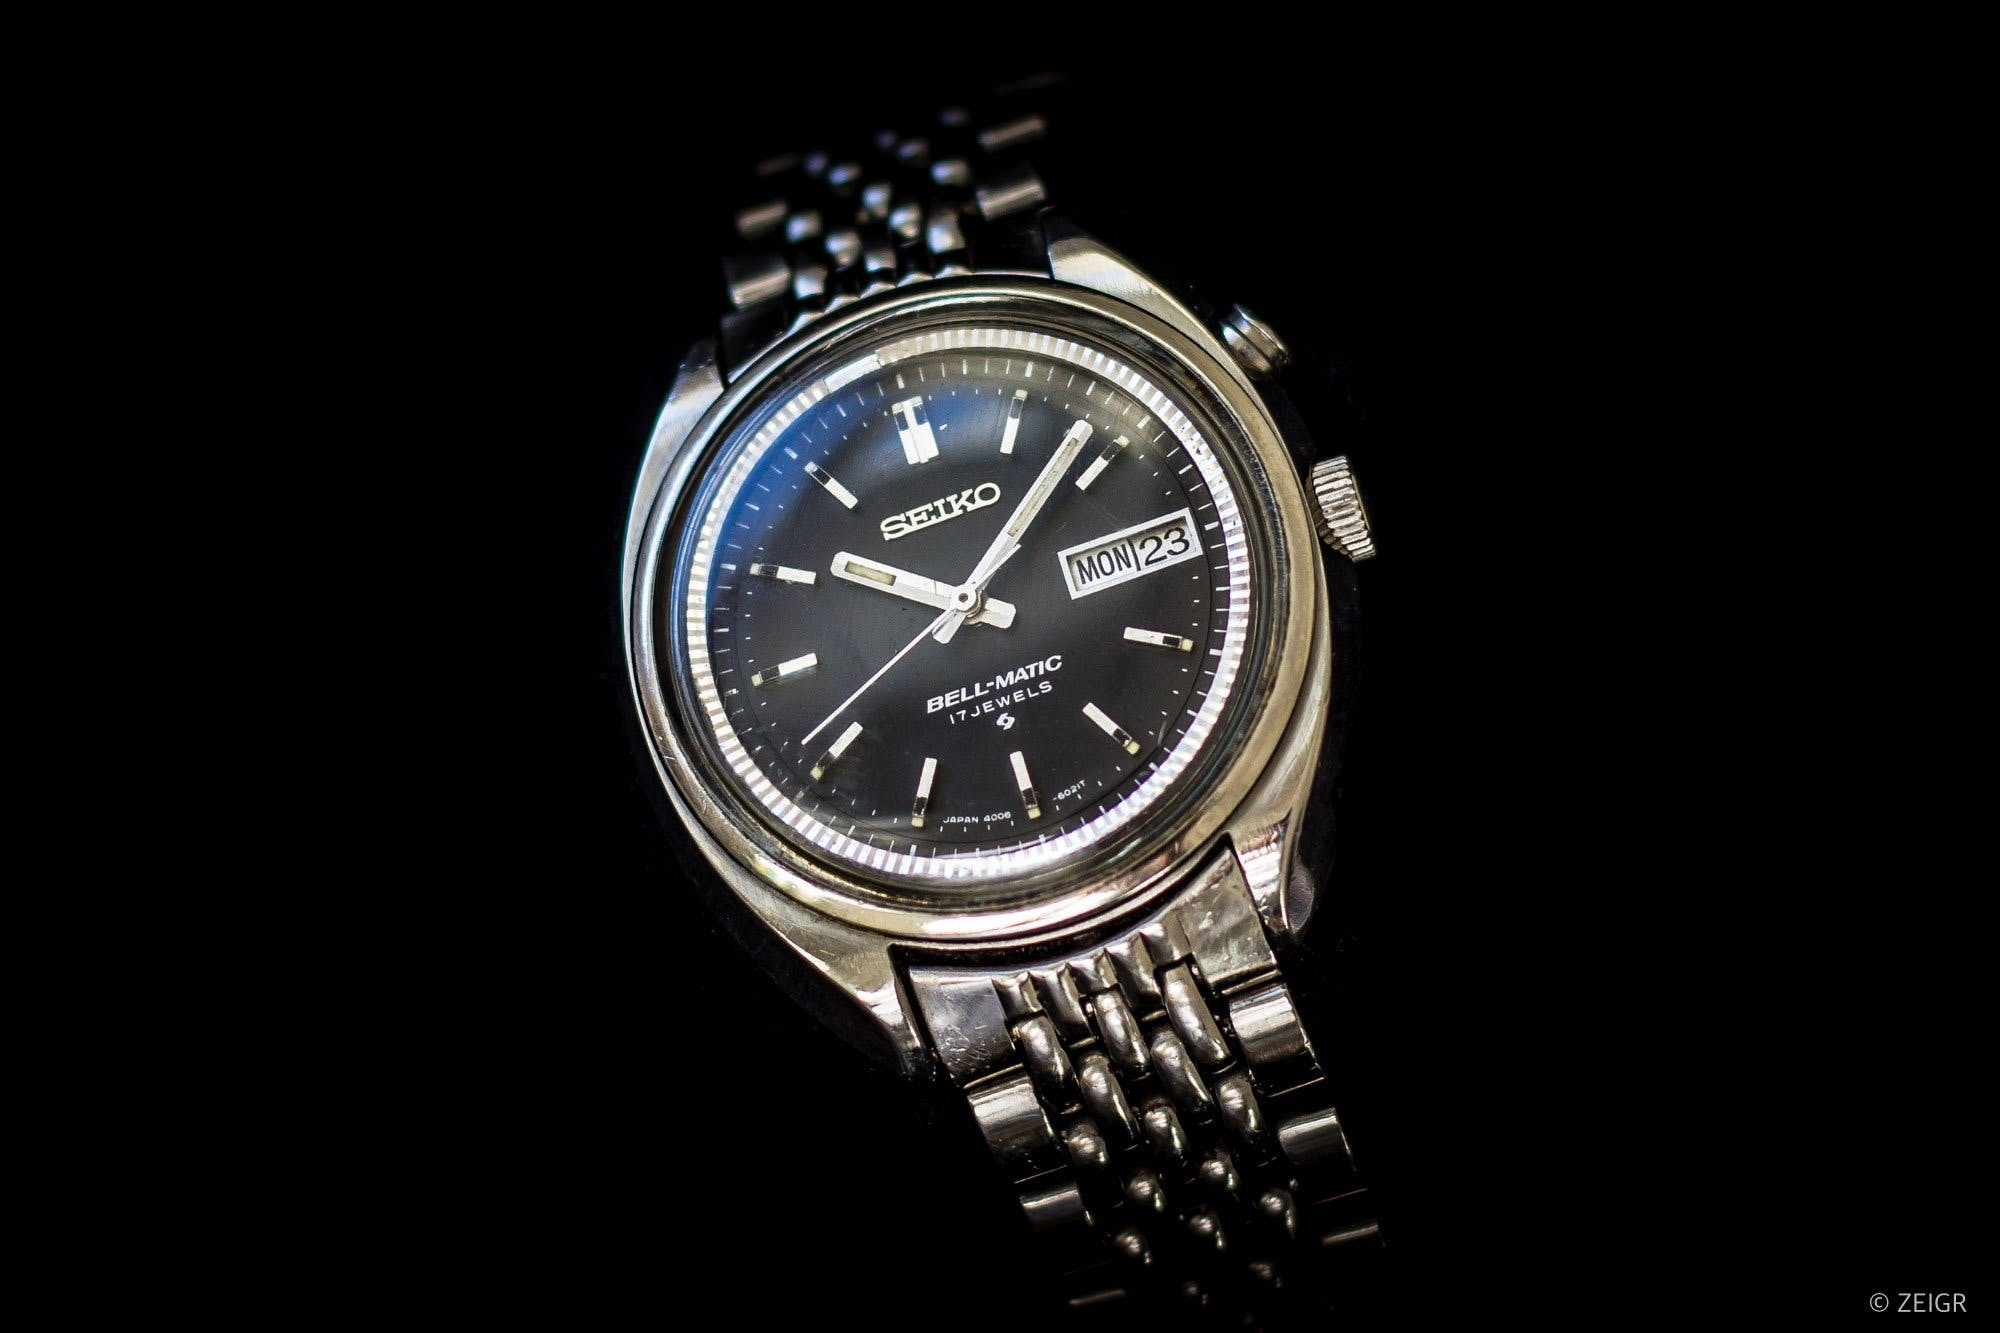 Seiko Bell-Matic with an alarm function